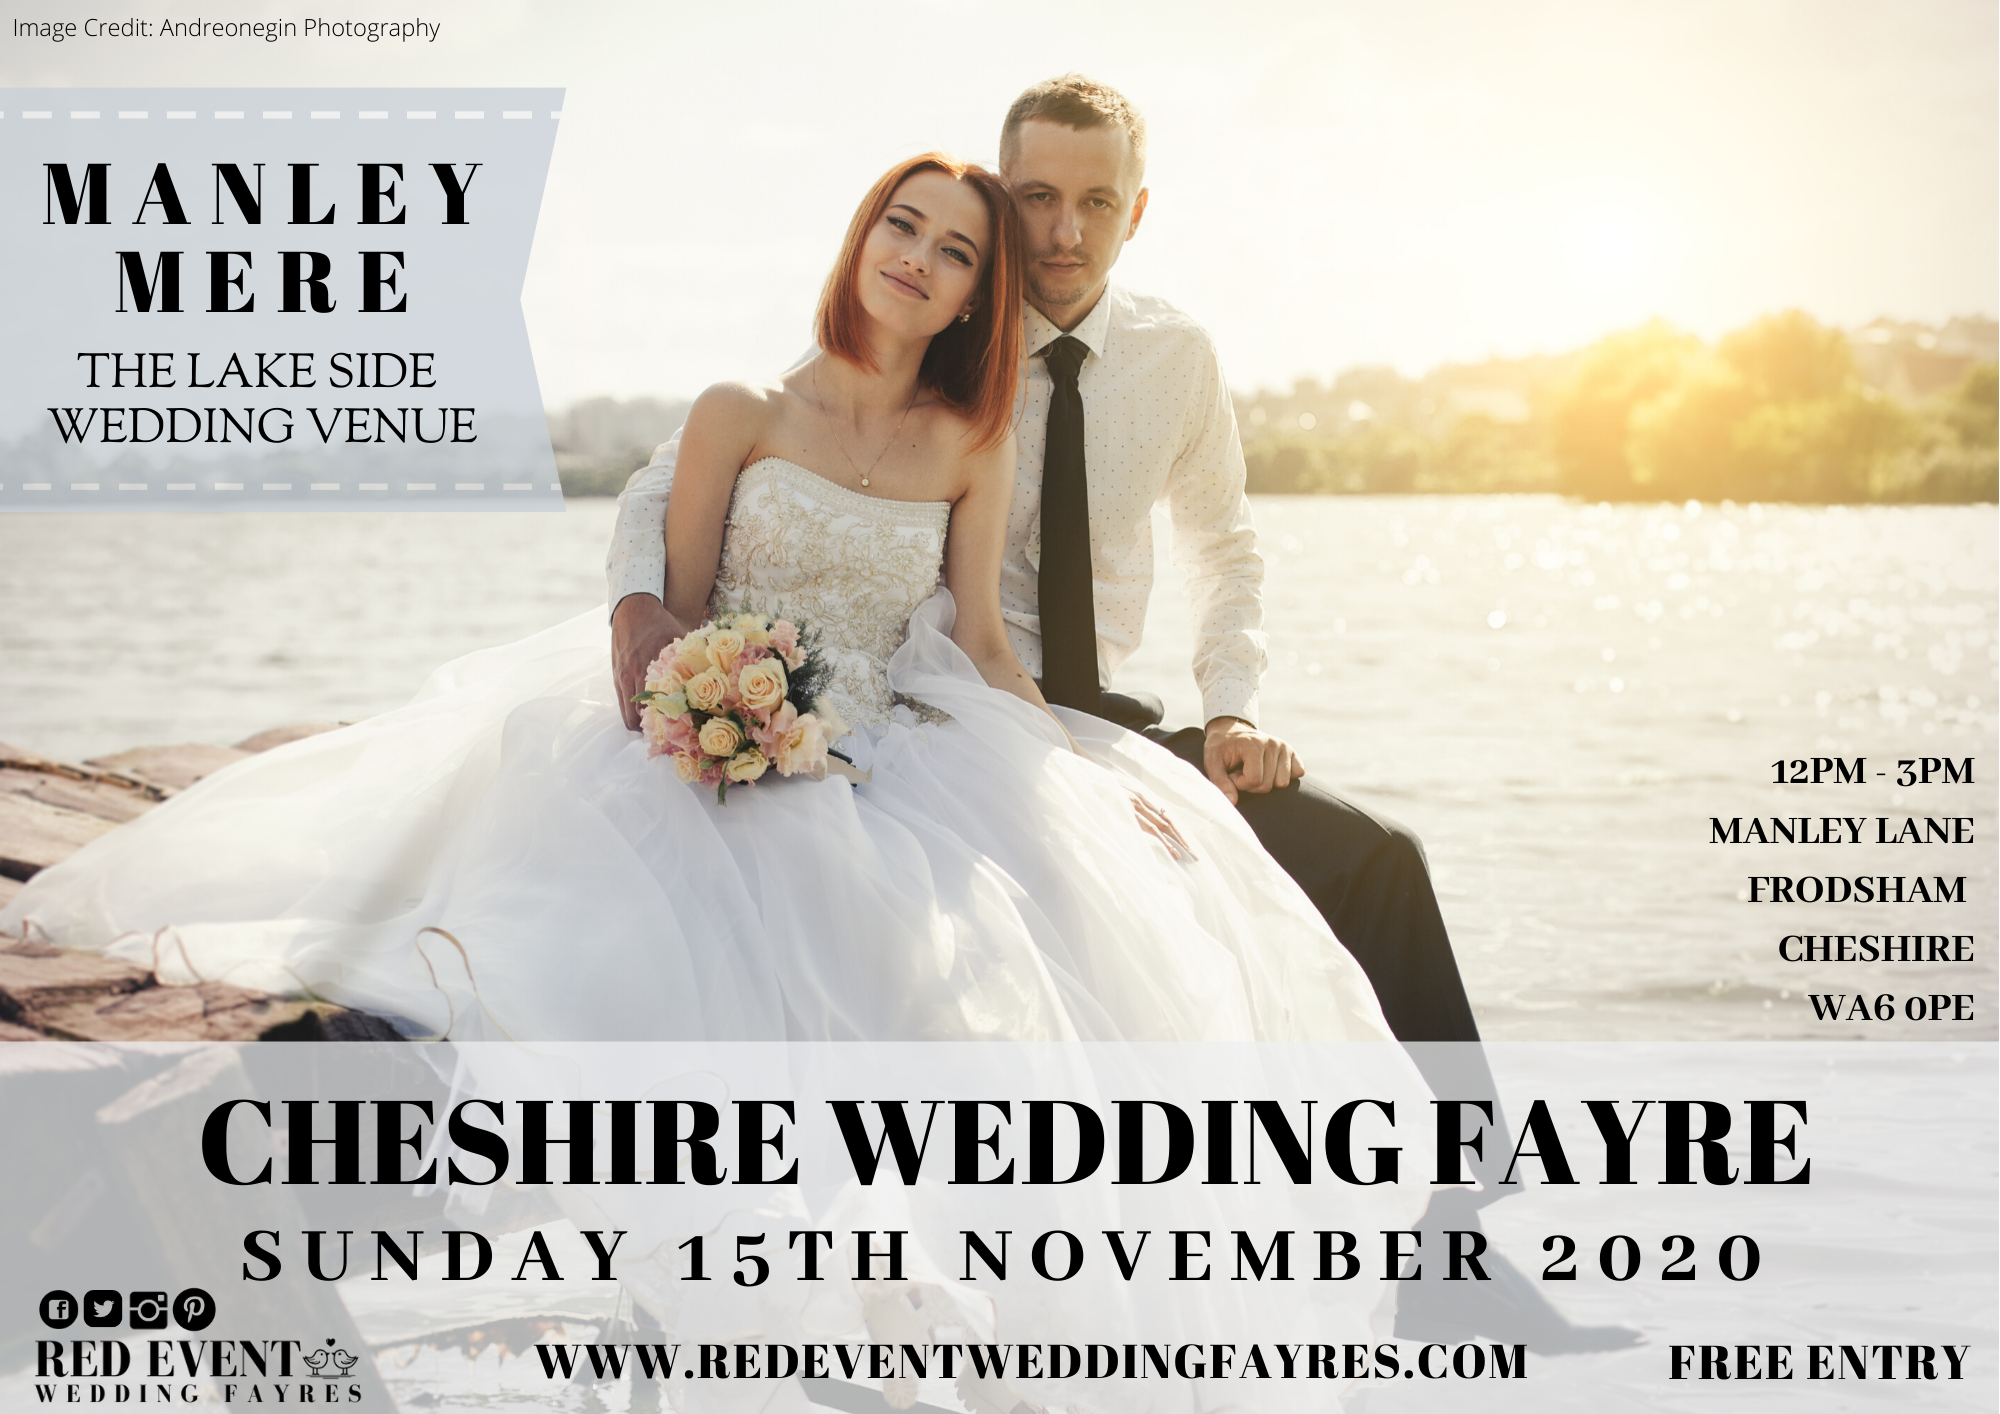 Cheshire's Boho Wedding Fayre at Manley Mere